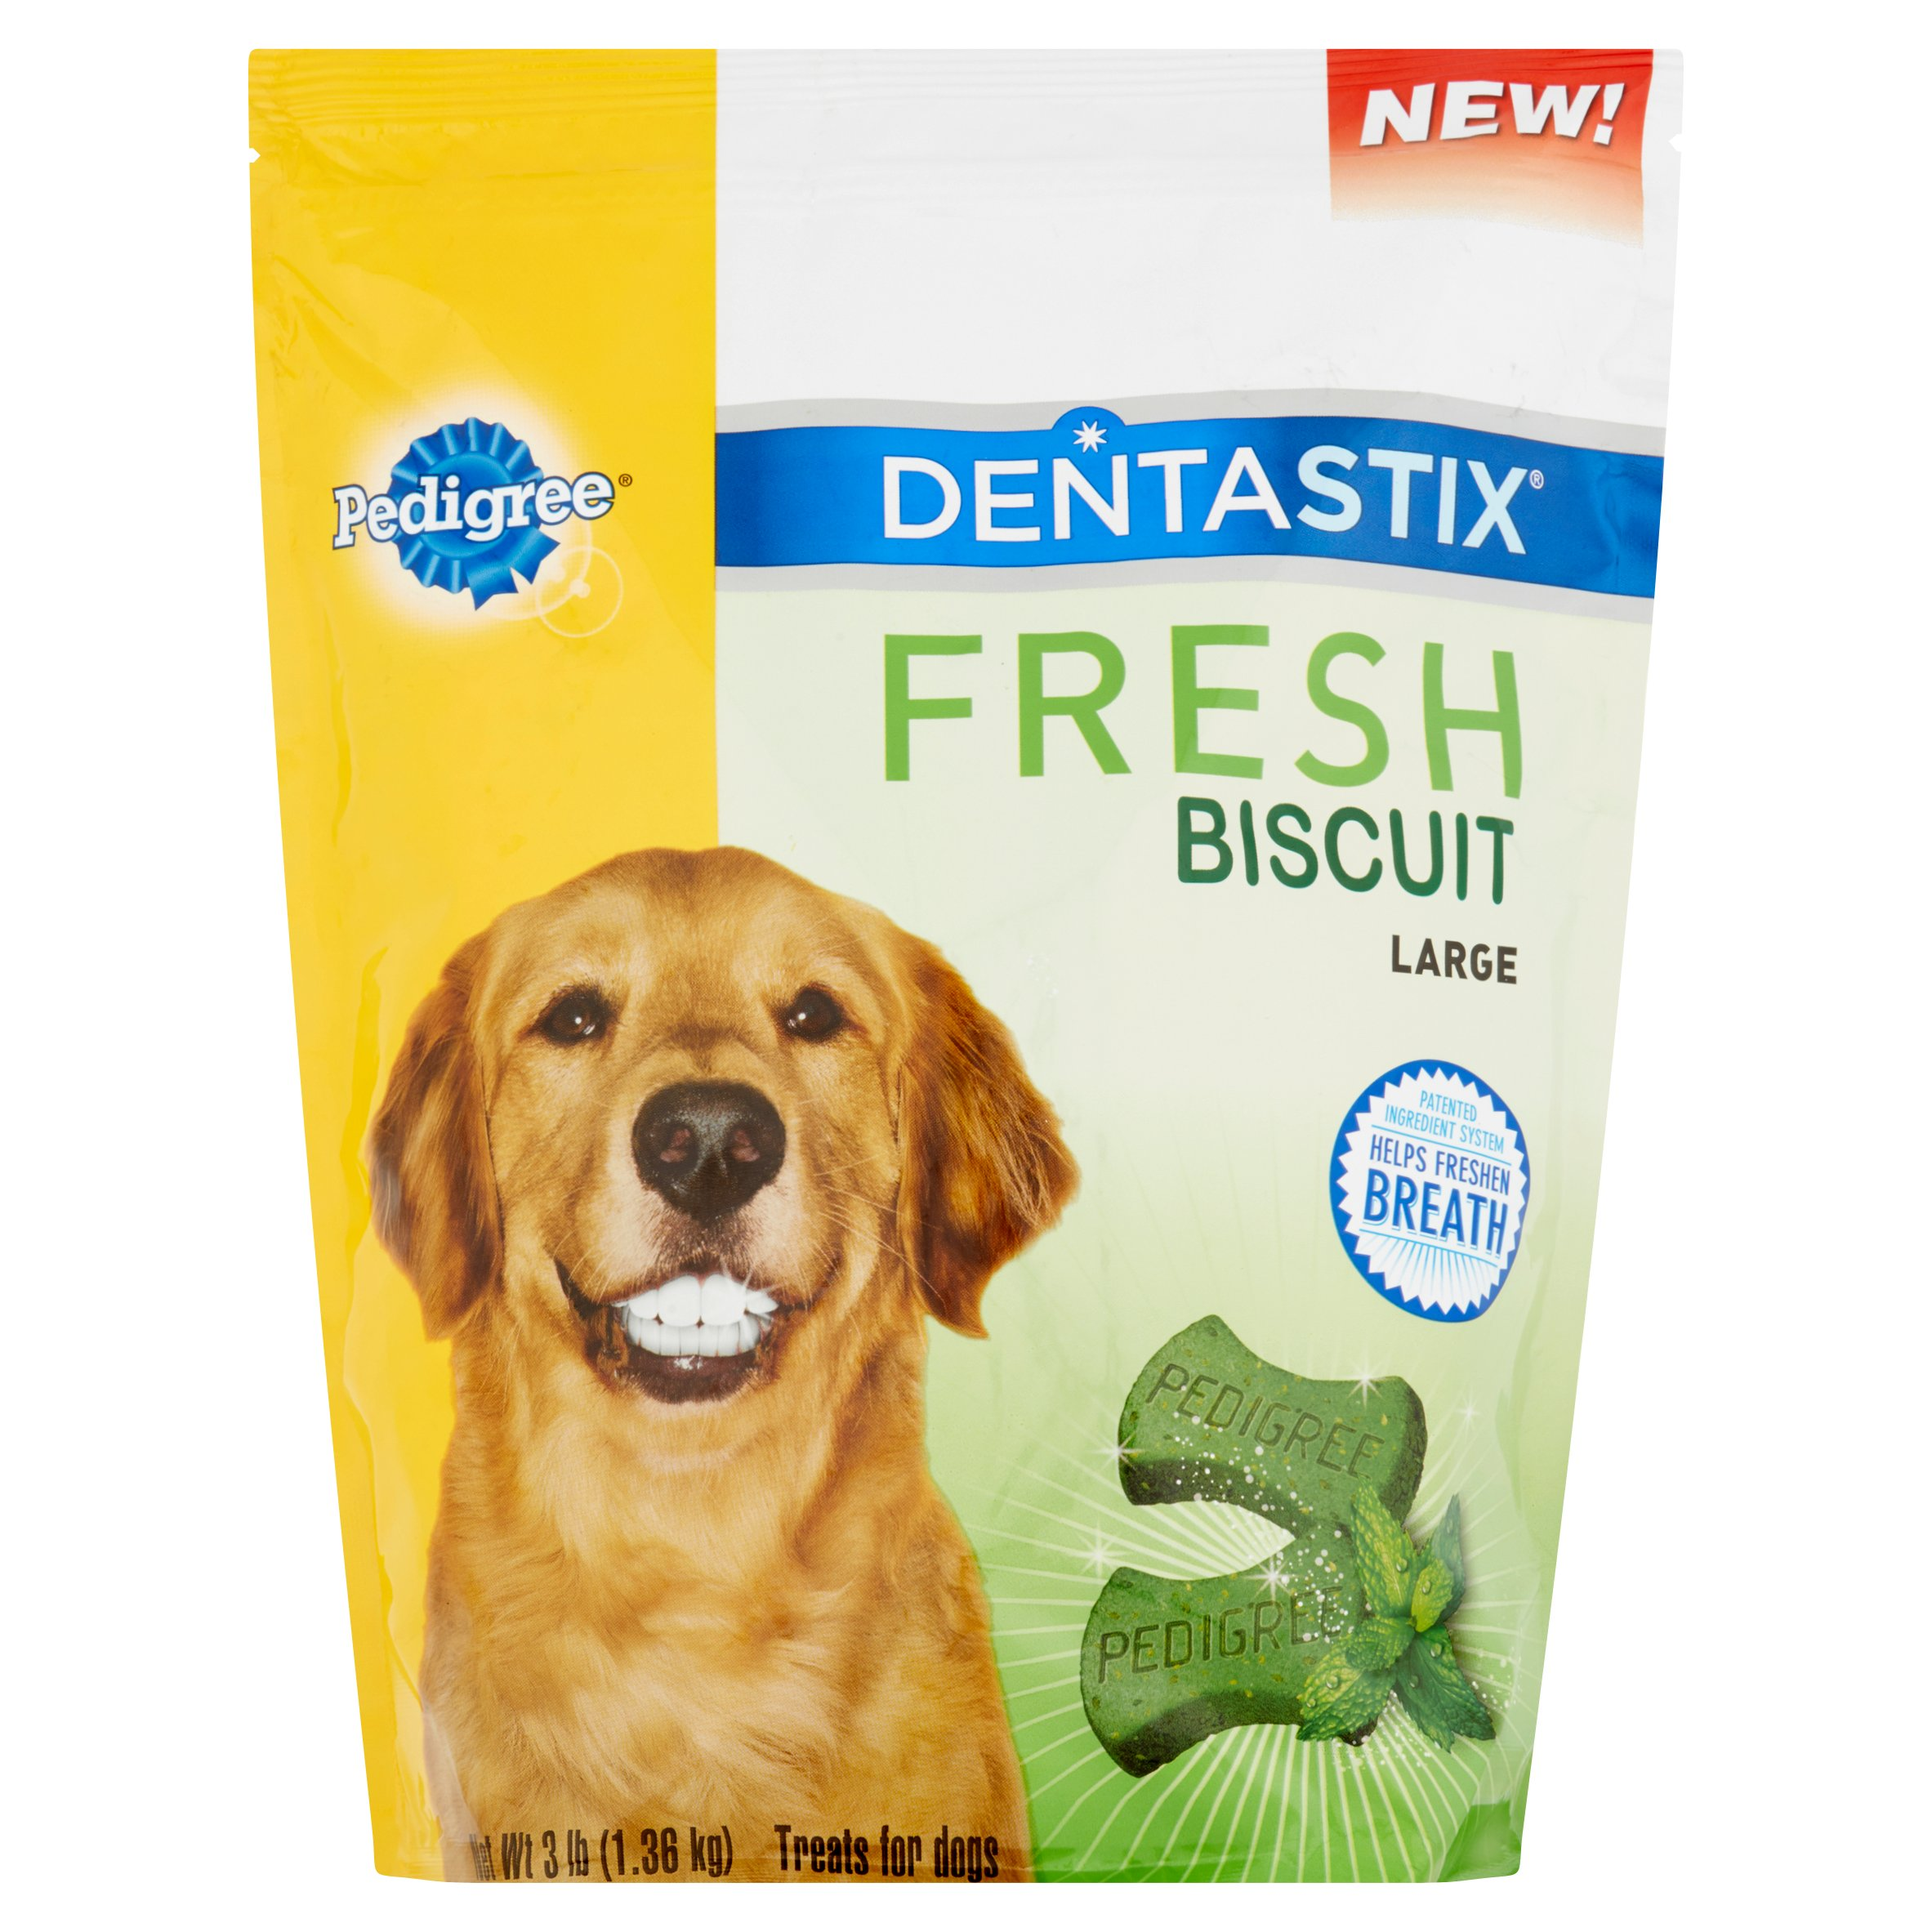 Dentastix Fresh Biscuit Large Dog Treats, 3 lb